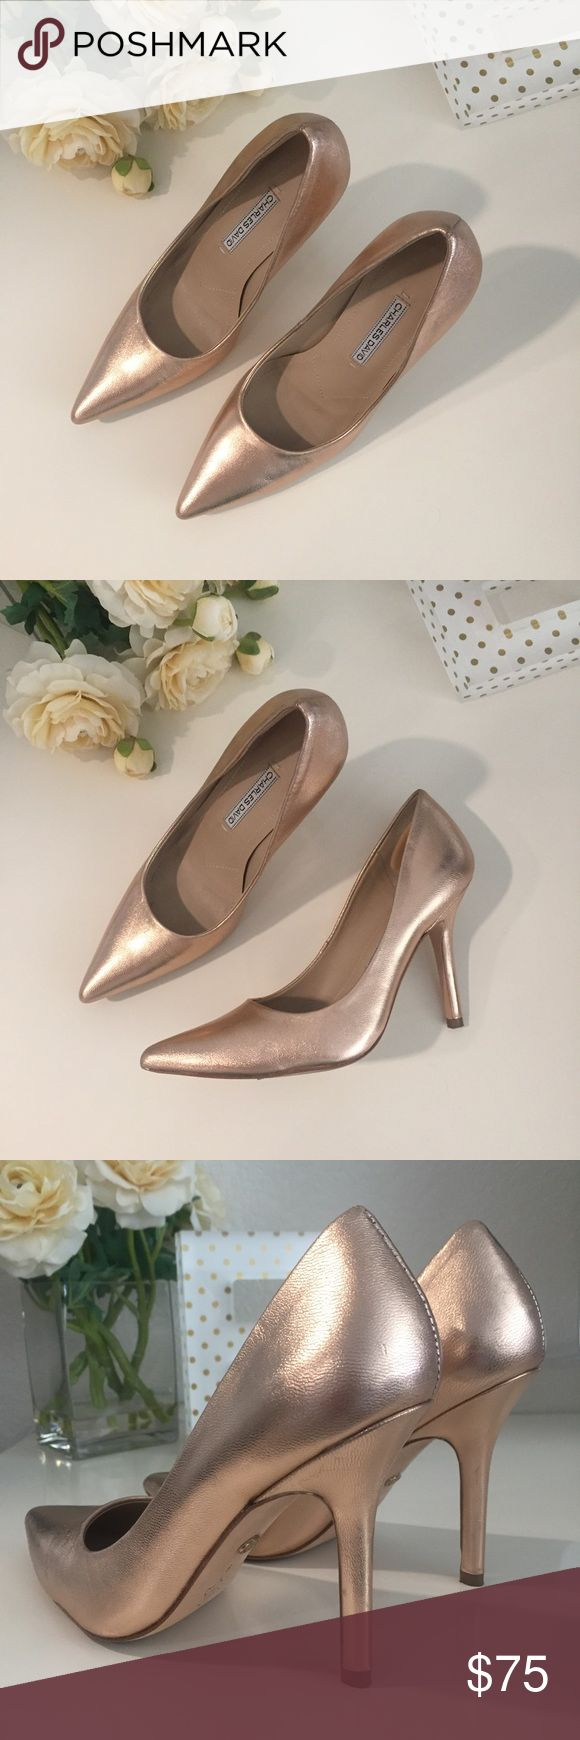 CHARLES DAVID Rose Gold Pumps, Size 6 Gorgeous and comfortable pumps in the season's trendy rose gold color, looks amazing on all skin tones! Heel height approx 4 in. Worn ONCE with expected scuffing to soles and minor signs of wear/scuffing elsewhere (see photos); these are not very noticeable. Includes box. Fits true to size. Retails for $230 plus tax. PRICE FIRM Charles David Shoes Heels